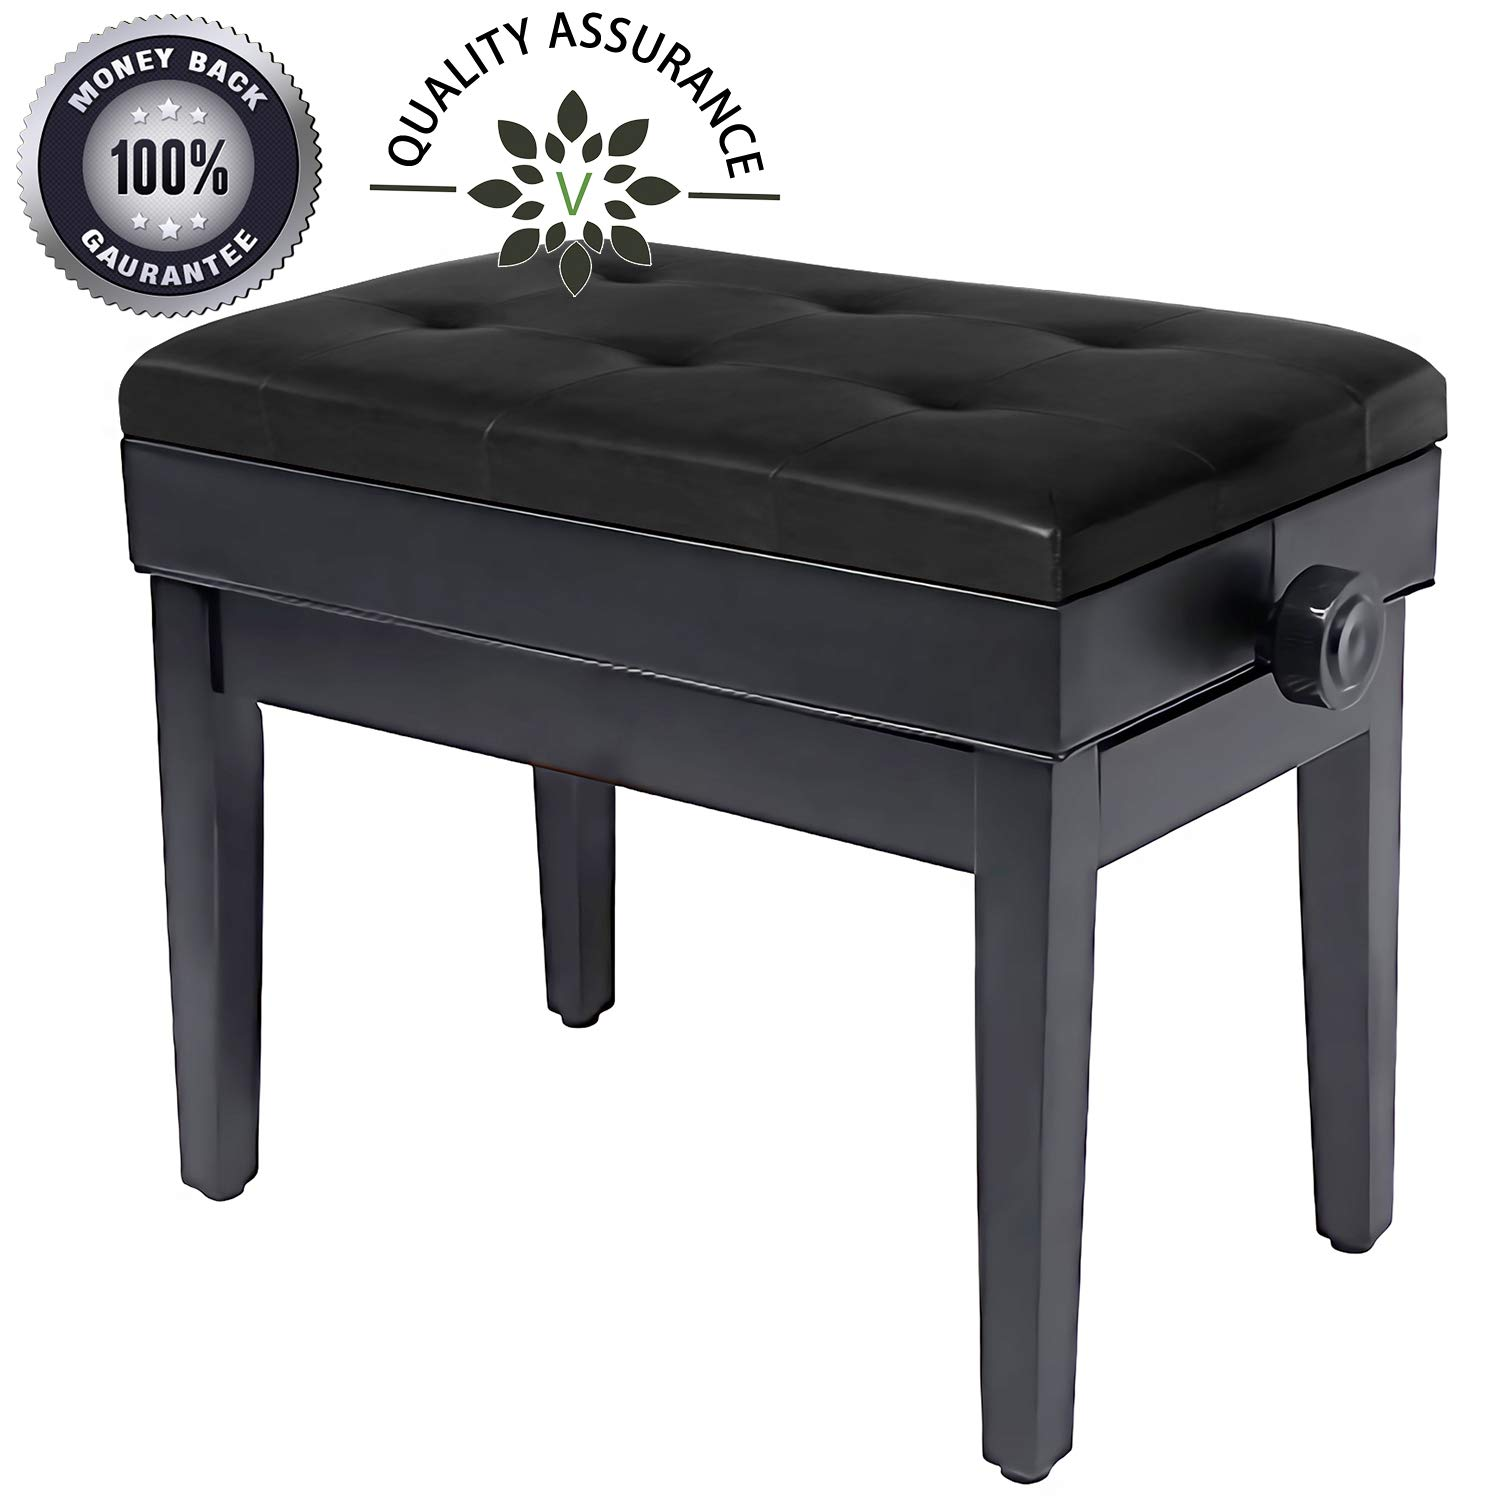 Brilliant Adjustable Piano Bench Wooden Piano Stool With Music Storage Height Adjustable Pu Leather And Solid Wood Black Gmtry Best Dining Table And Chair Ideas Images Gmtryco